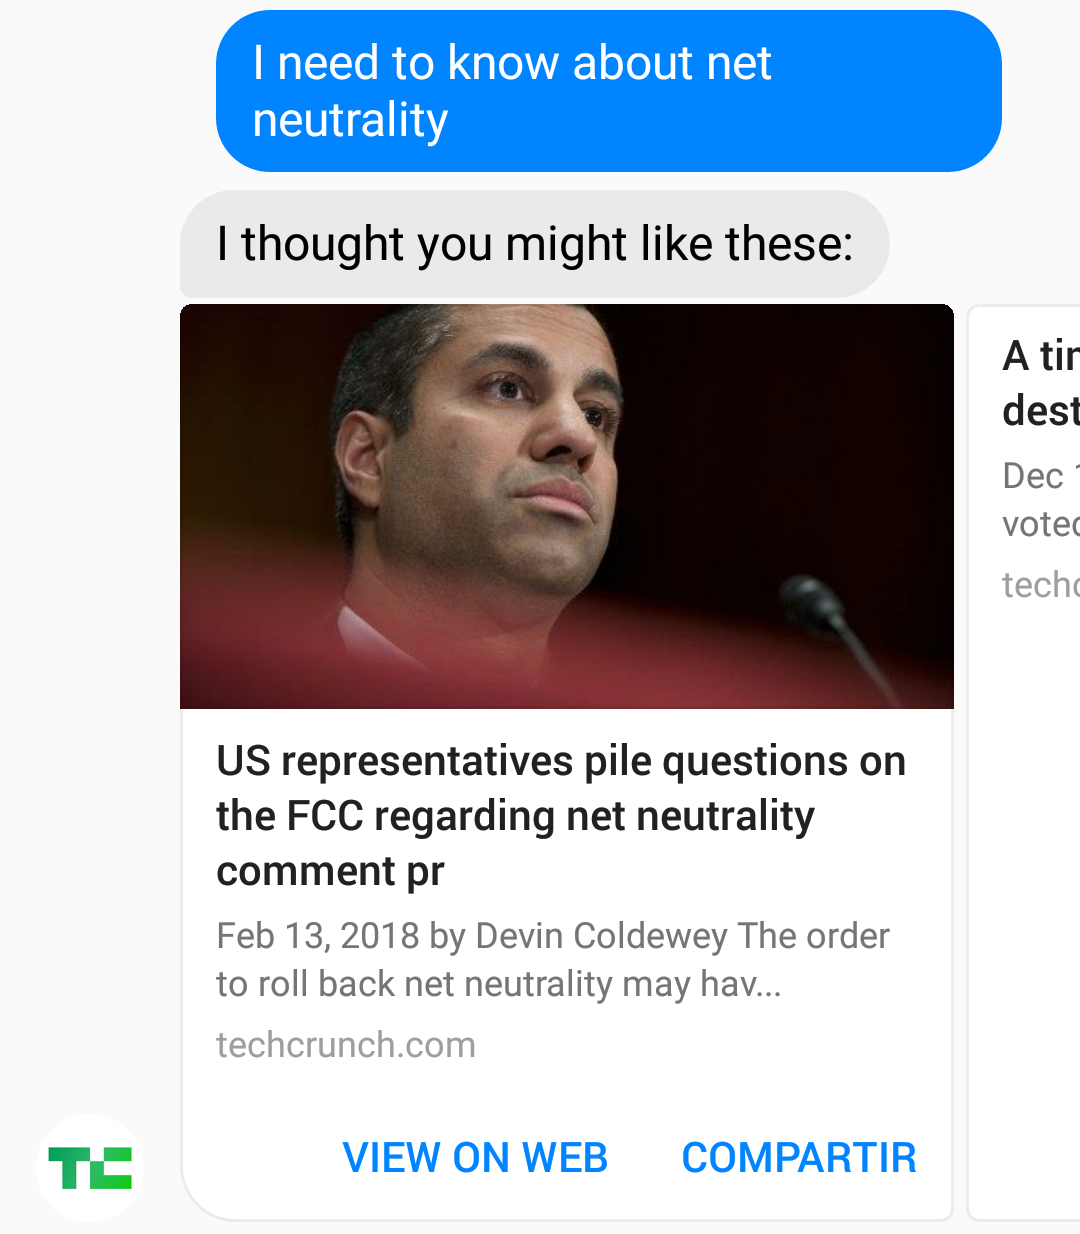 I need to know about net neutrality